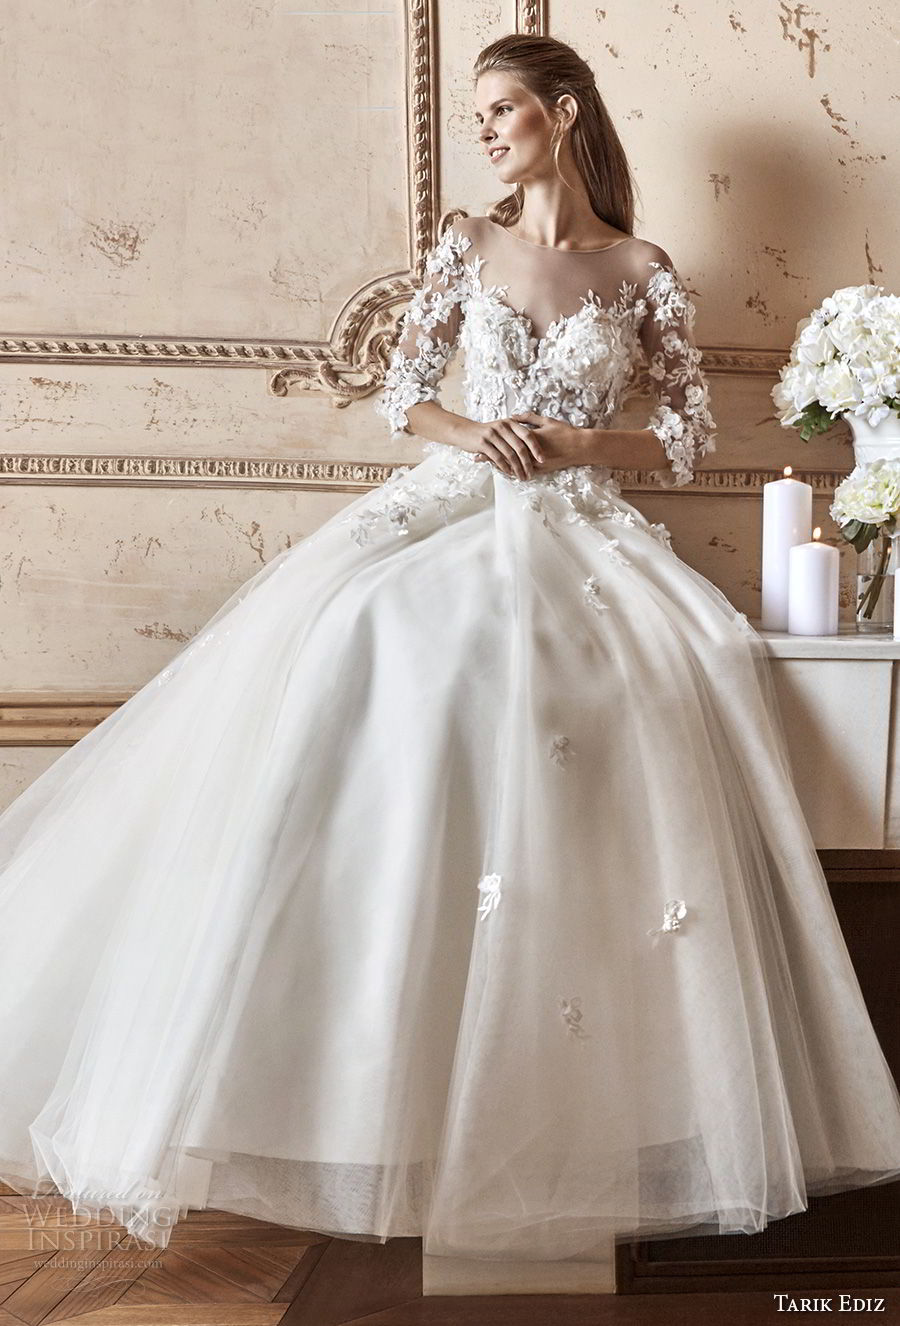 tarik ediz 2017 bridal three quarter sleeves illusion bateau sweetheart neckline heavily embellished bodice romantic a line wedding dress (13) mv